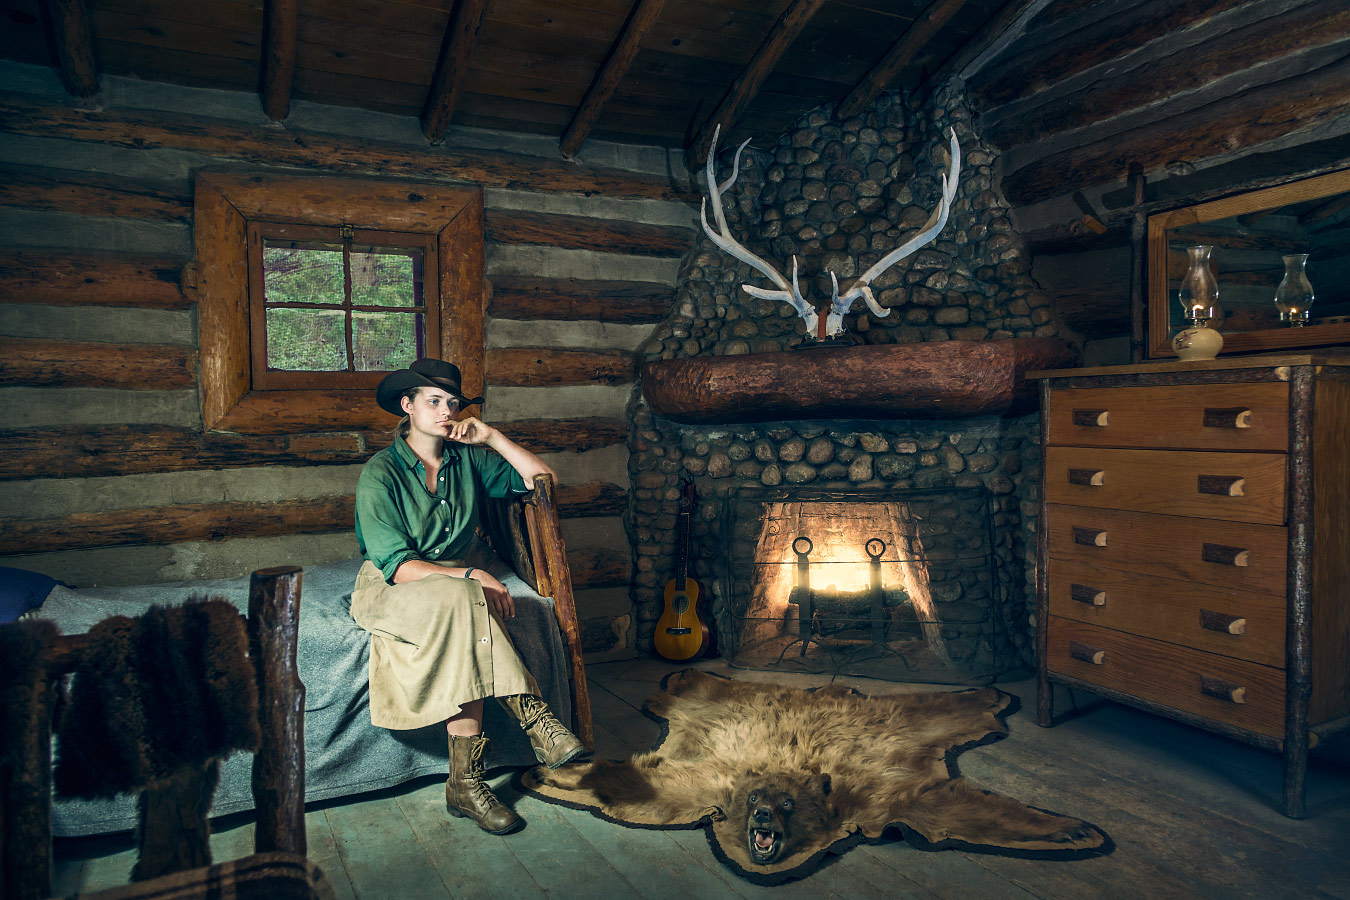 Sarah McMurphy, Homesteader, the Hunting Lodge, Philmont Scout Ranch Cimarron New Mexico